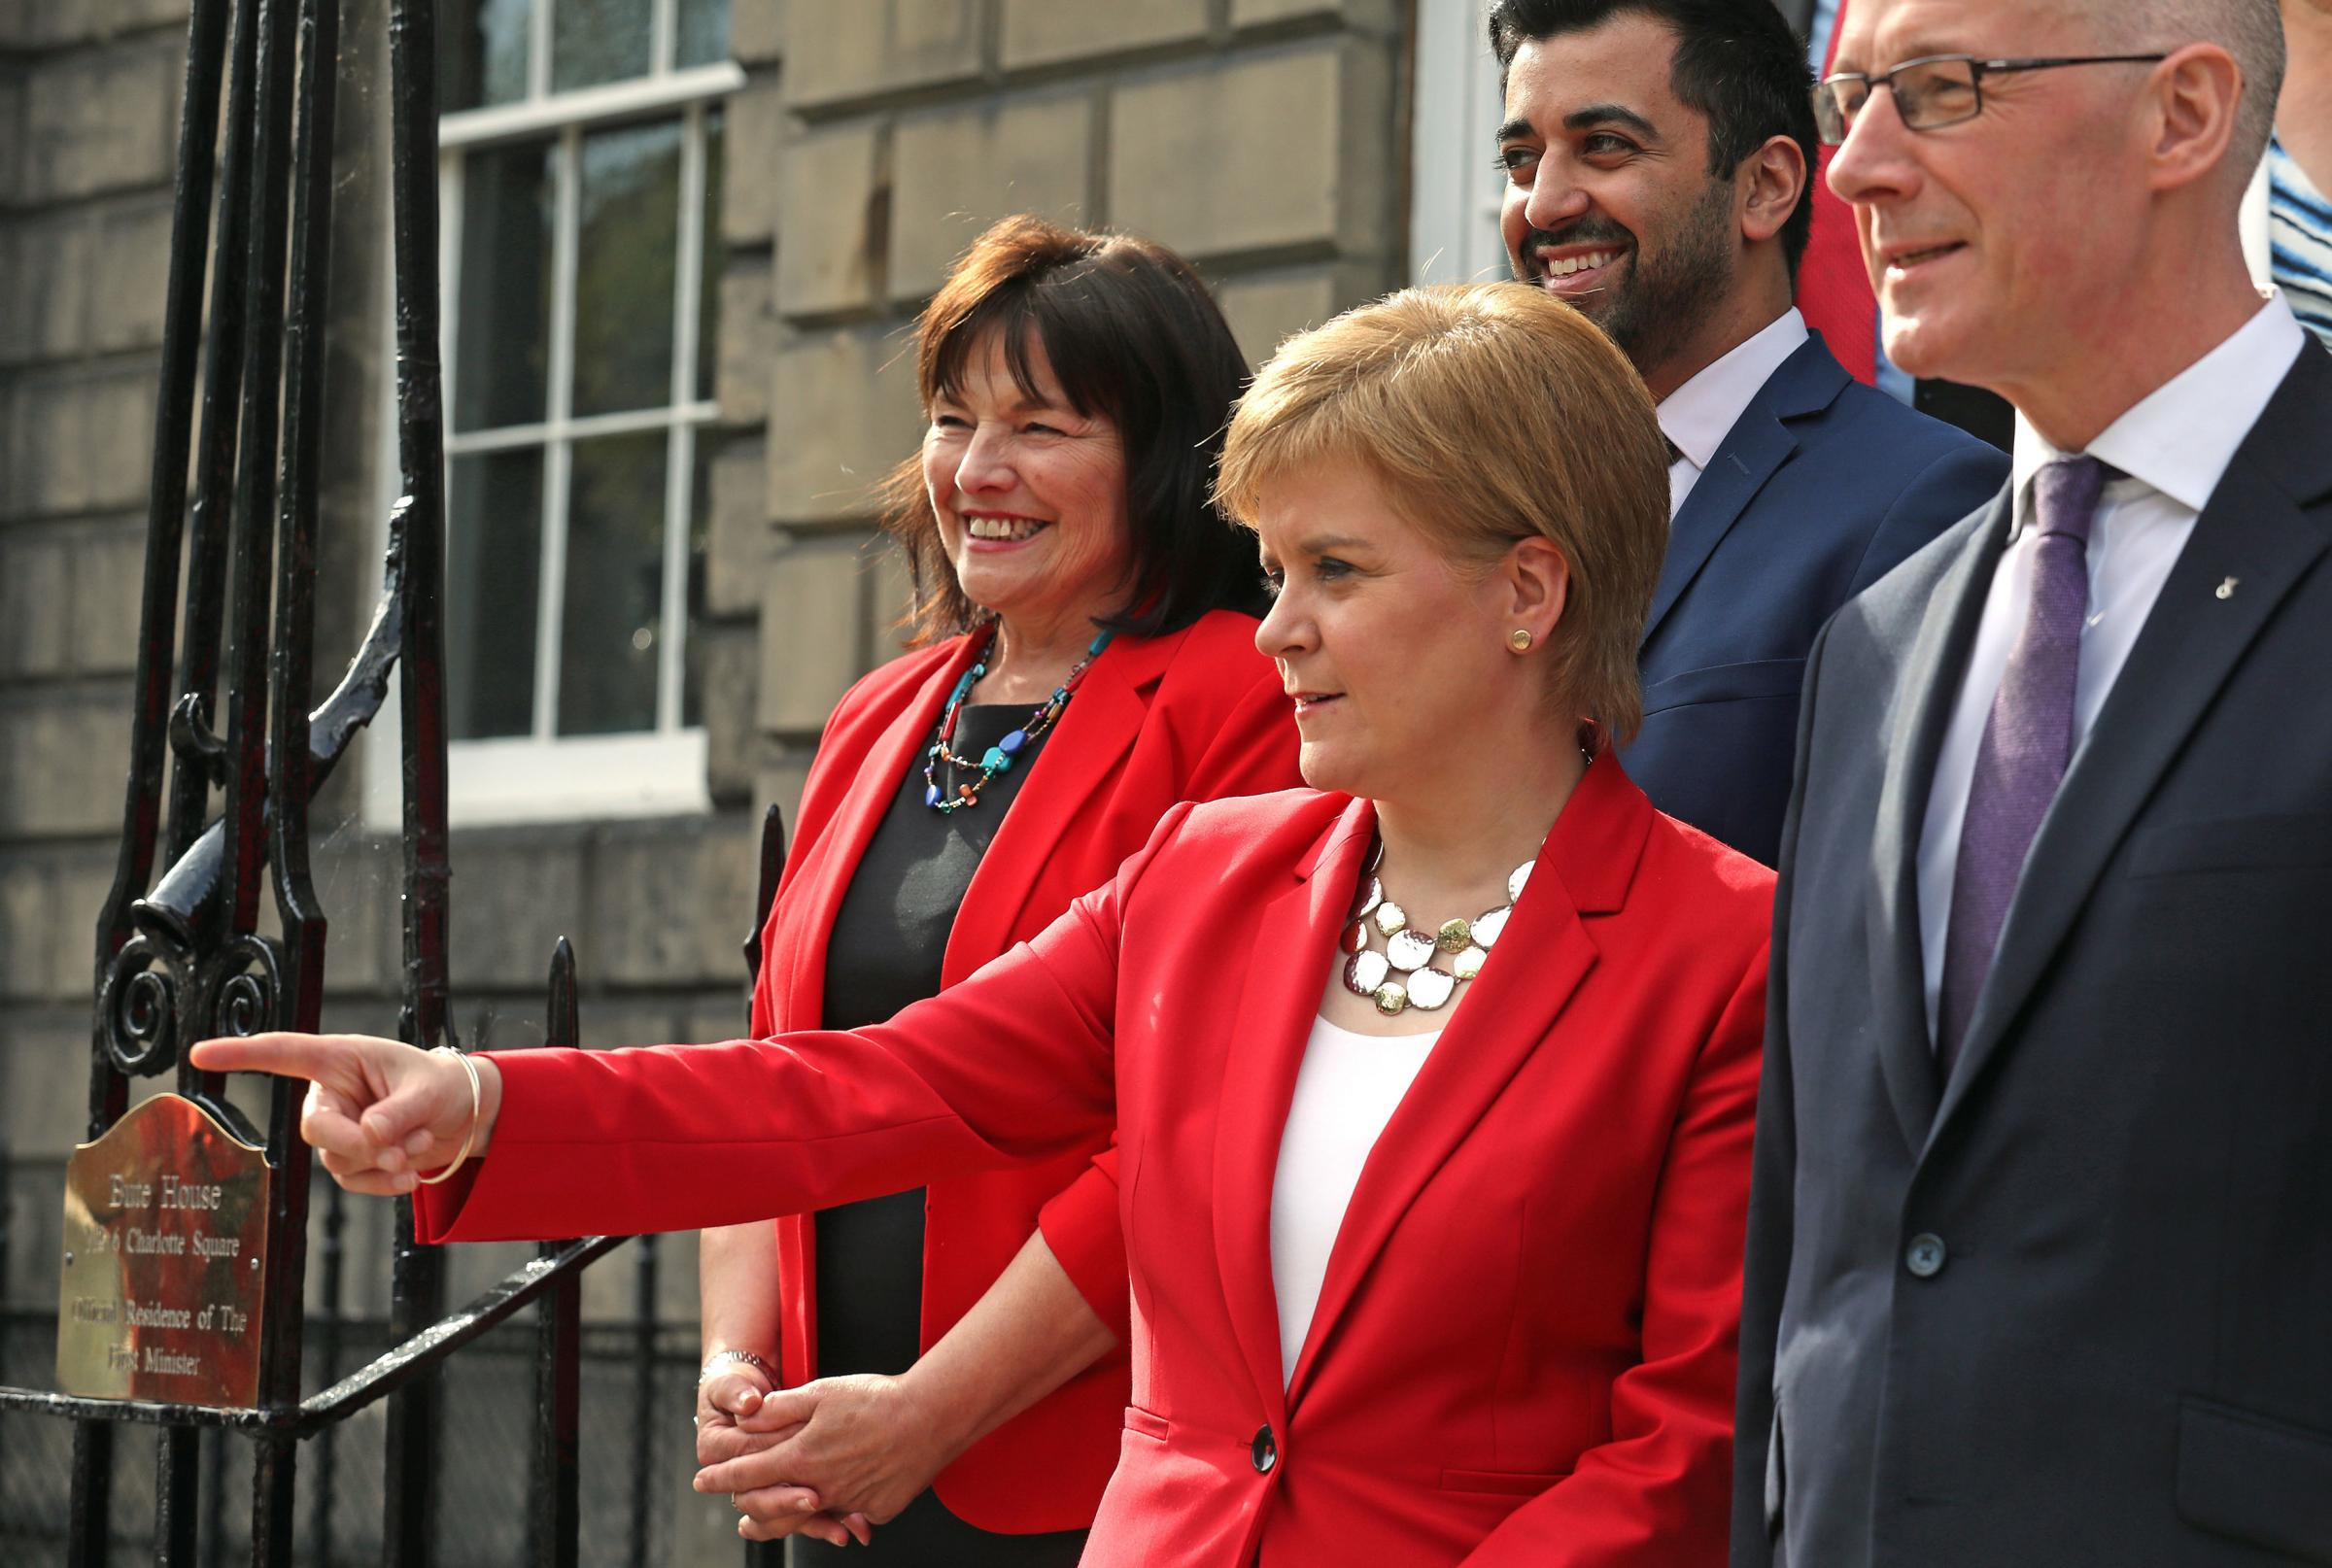 First Minister Nicola Sturgeon and Deputy First Minister John Swinney (right) with Jeane Freeman and Humza Yousaf at Bute House after the Cabinet reshuffle. Picture: Andrew Milligan/PA Wire.